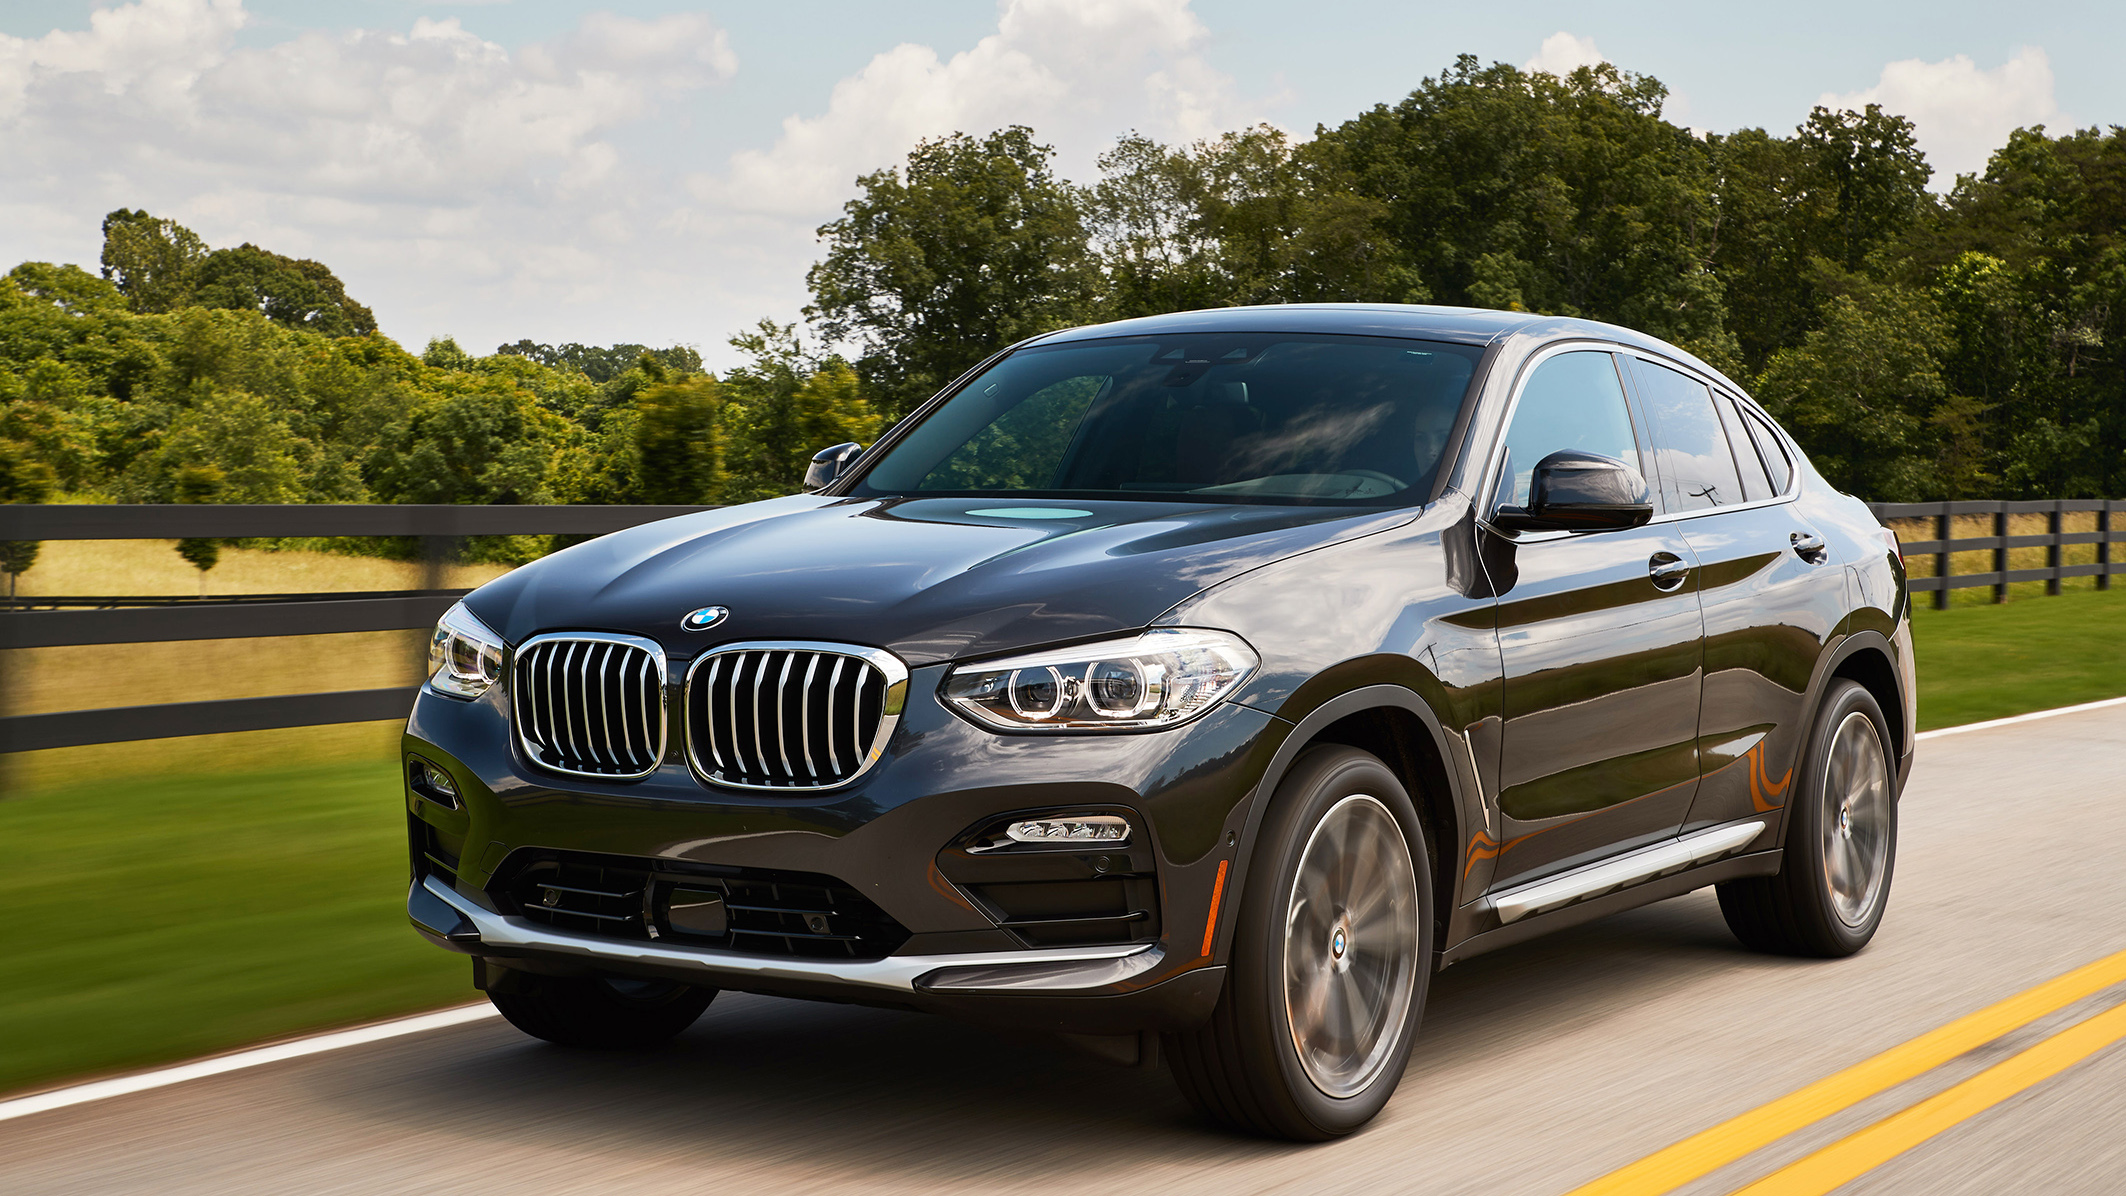 72 Hours With the 2019 BMW X4 M40i